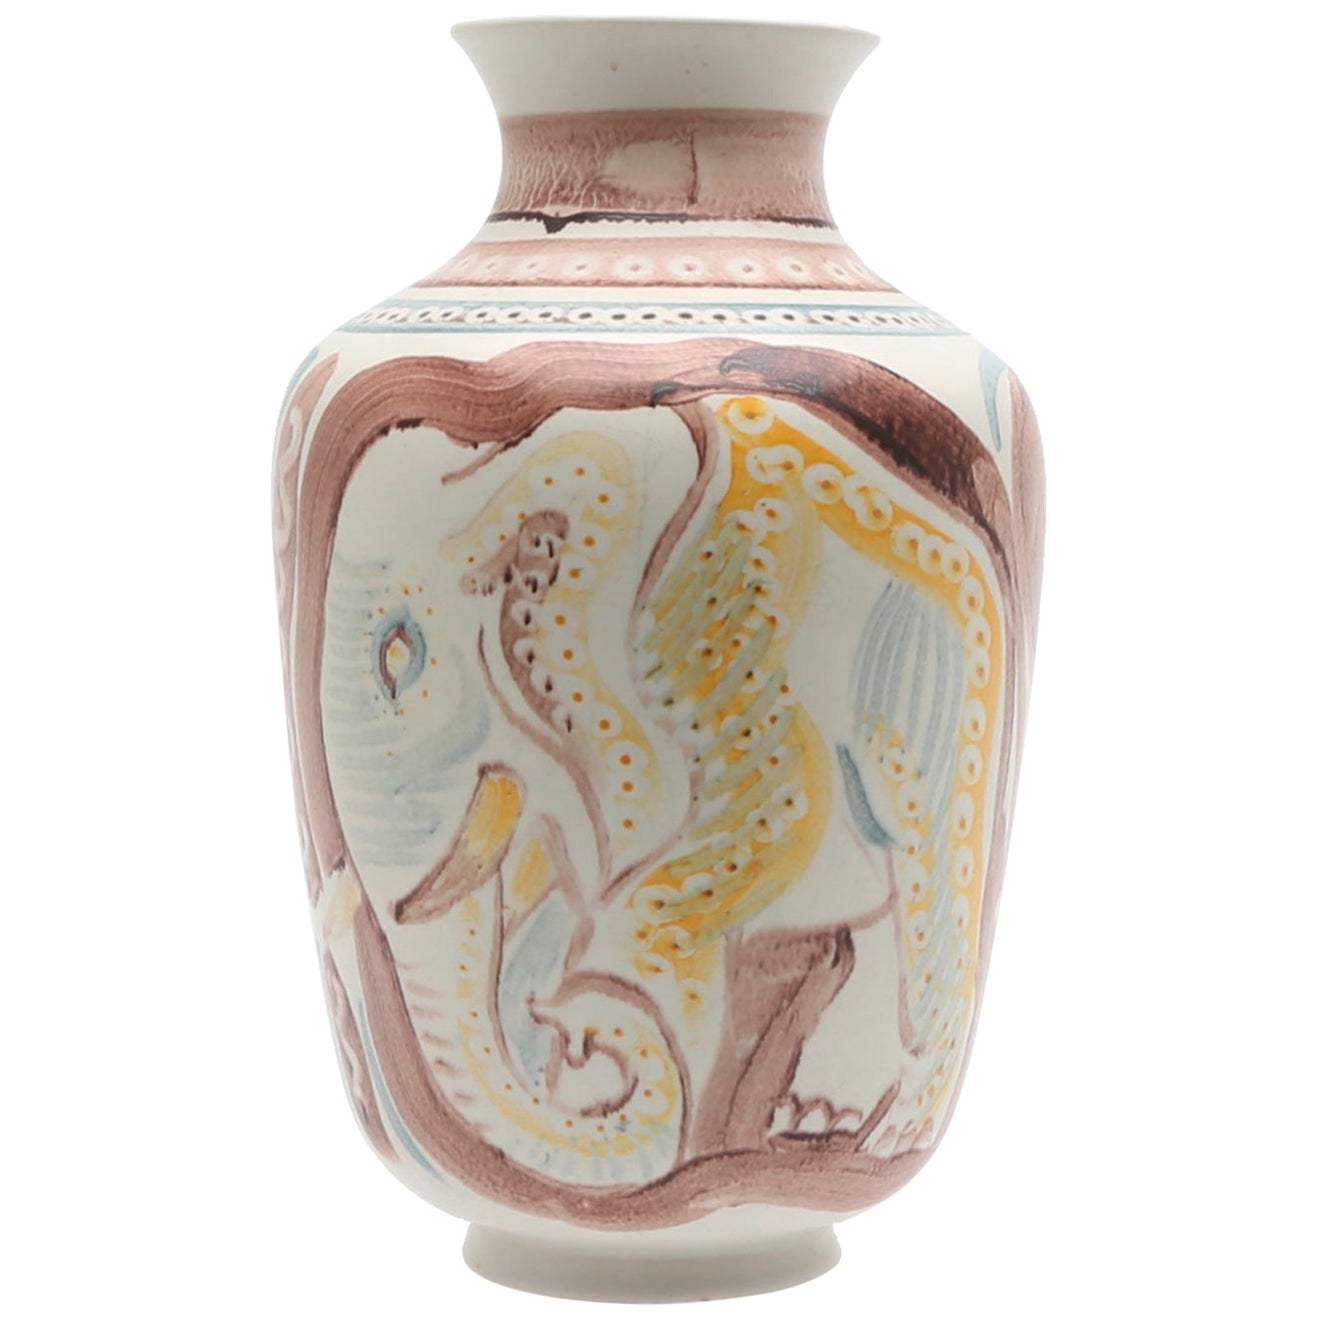 Scandinavian Modern Unique Hand Decorated Vase by Carl-Harry Stålhane, Rörstrand